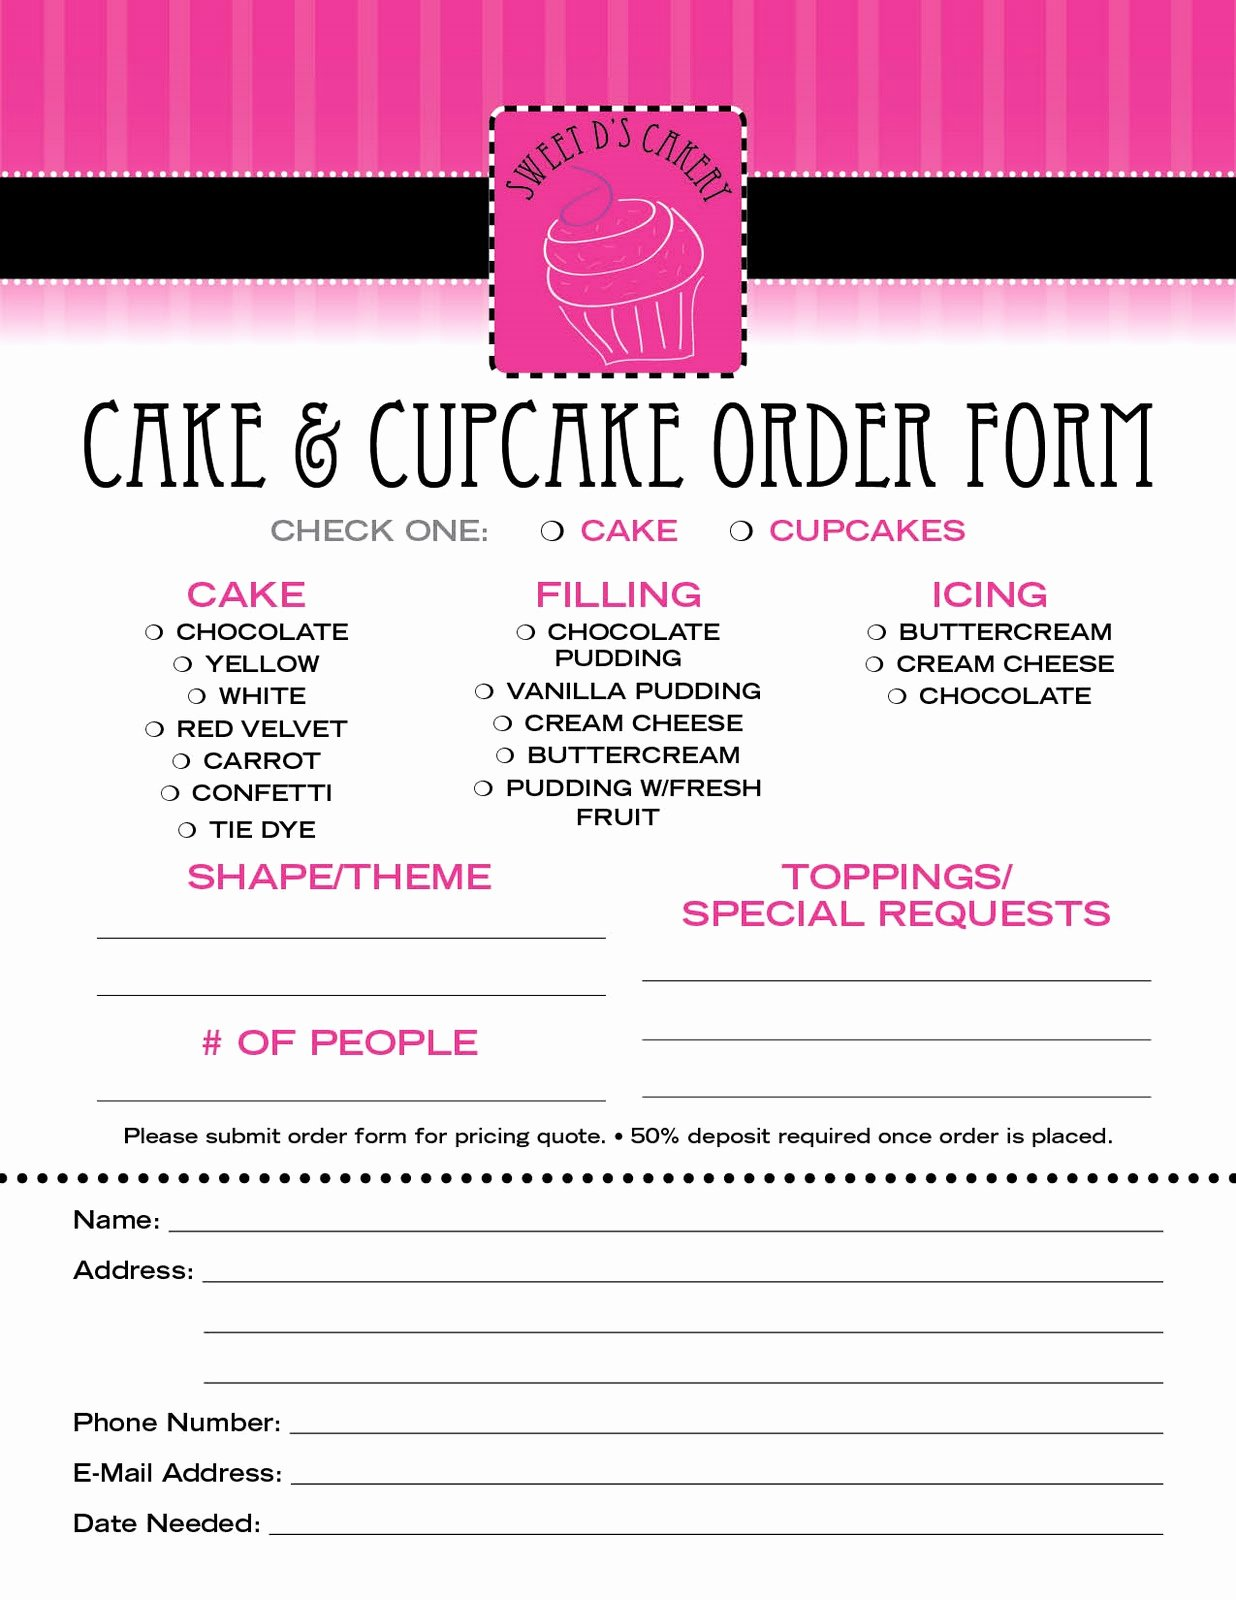 Cake order forms Templates Elegant Sweet D S Cakery Download Our order form Here